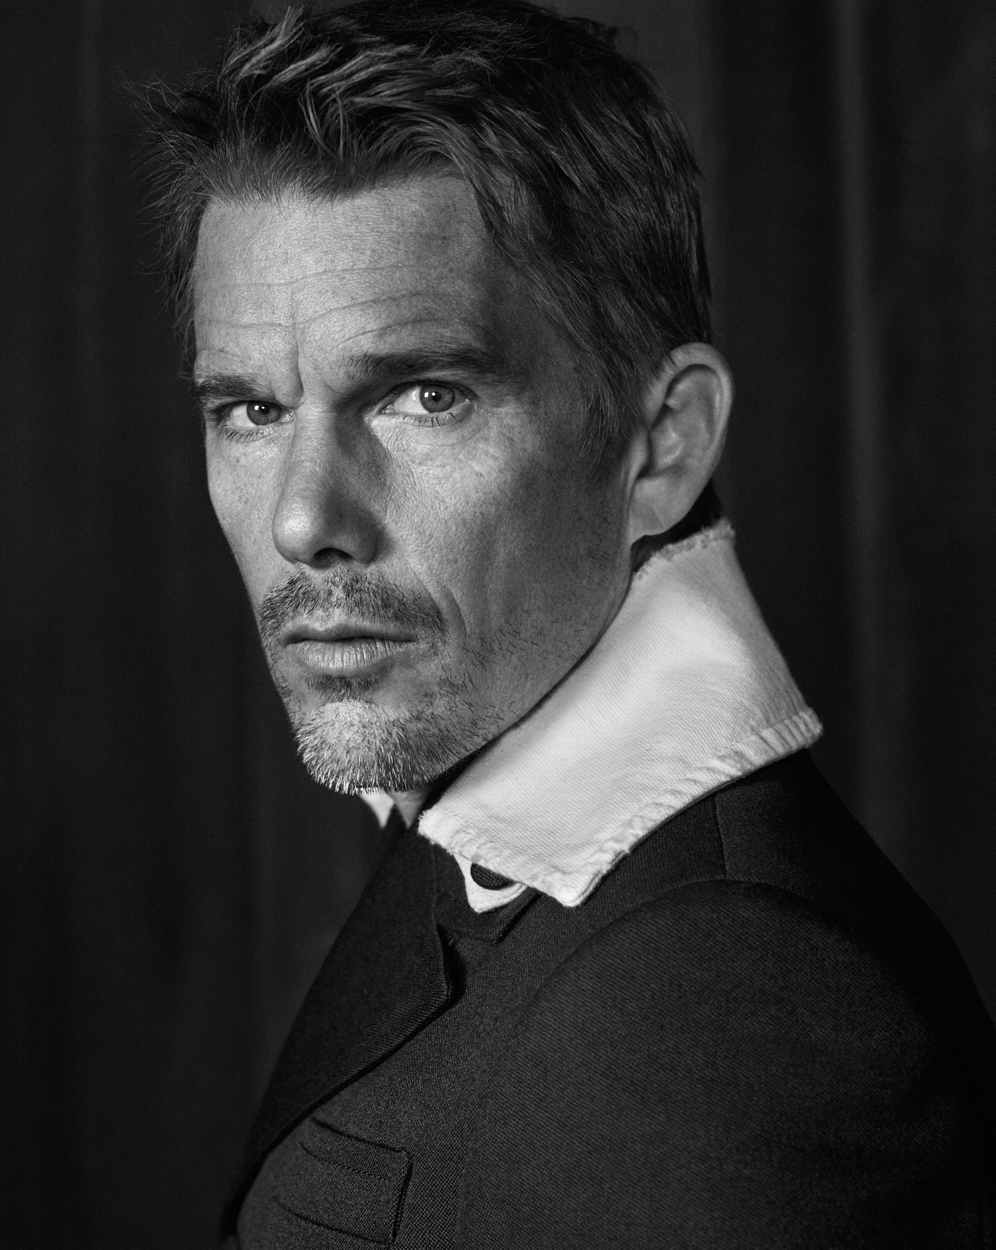 Celebrity Photographer Michael Schwartz: Ethan Hawke for Icon Magazine cover in Prada